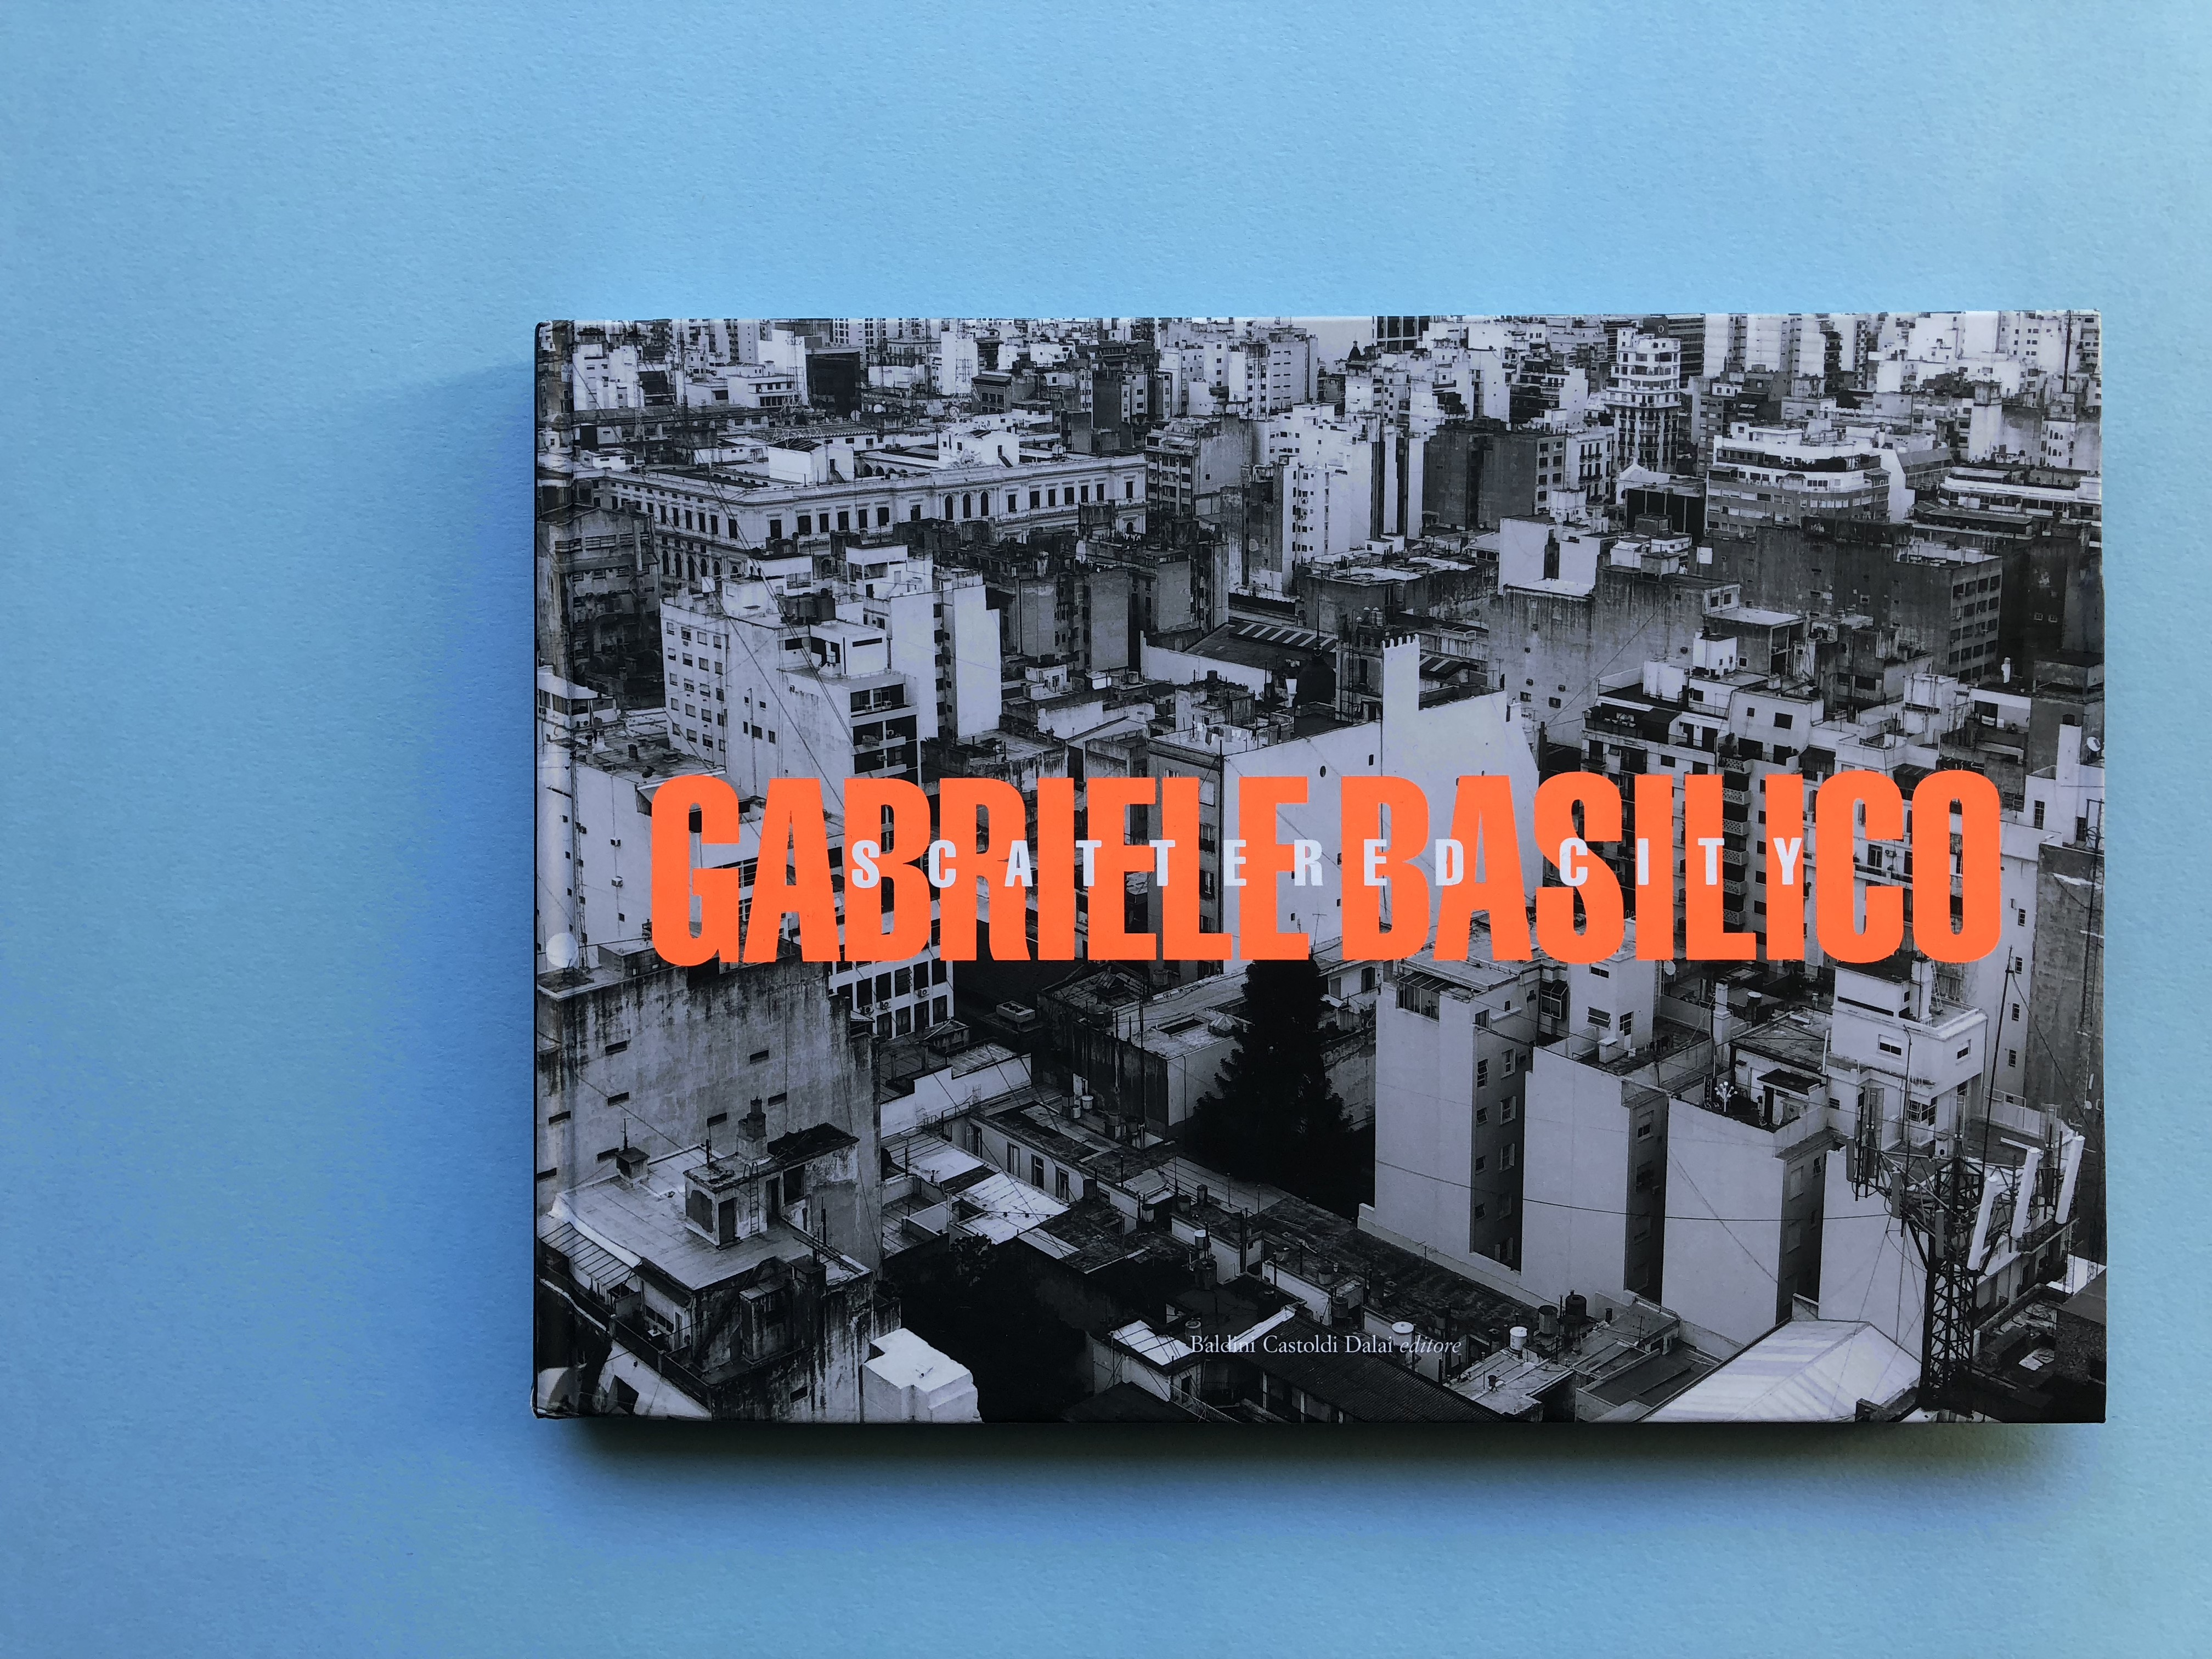 SCRATTERED CITY / GABRIELE BASILICO